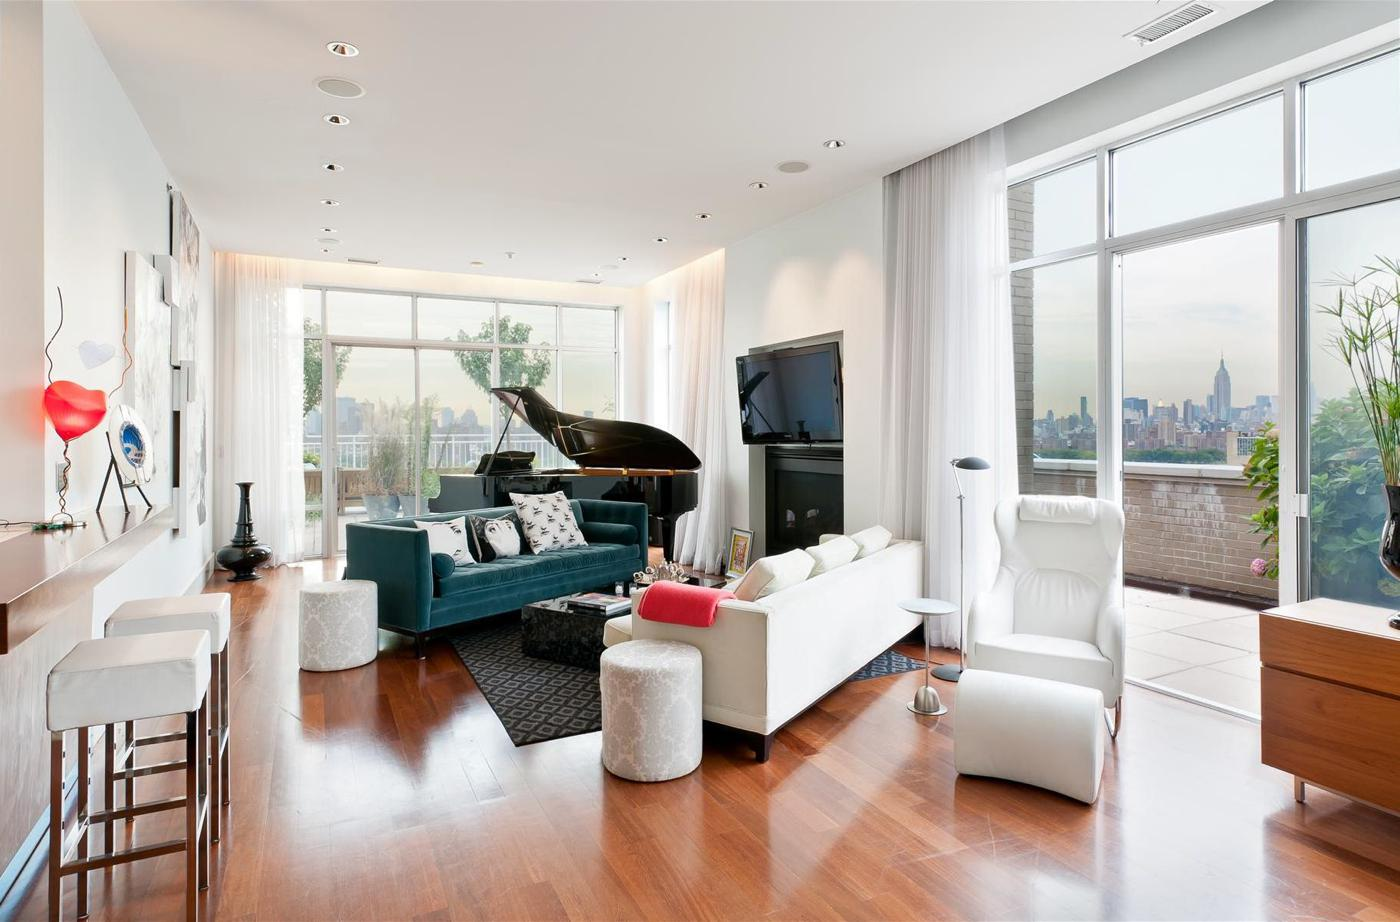 13 Stunning Apartments In New York: 12 Amazing New York Loft Apartments That Will Give You A